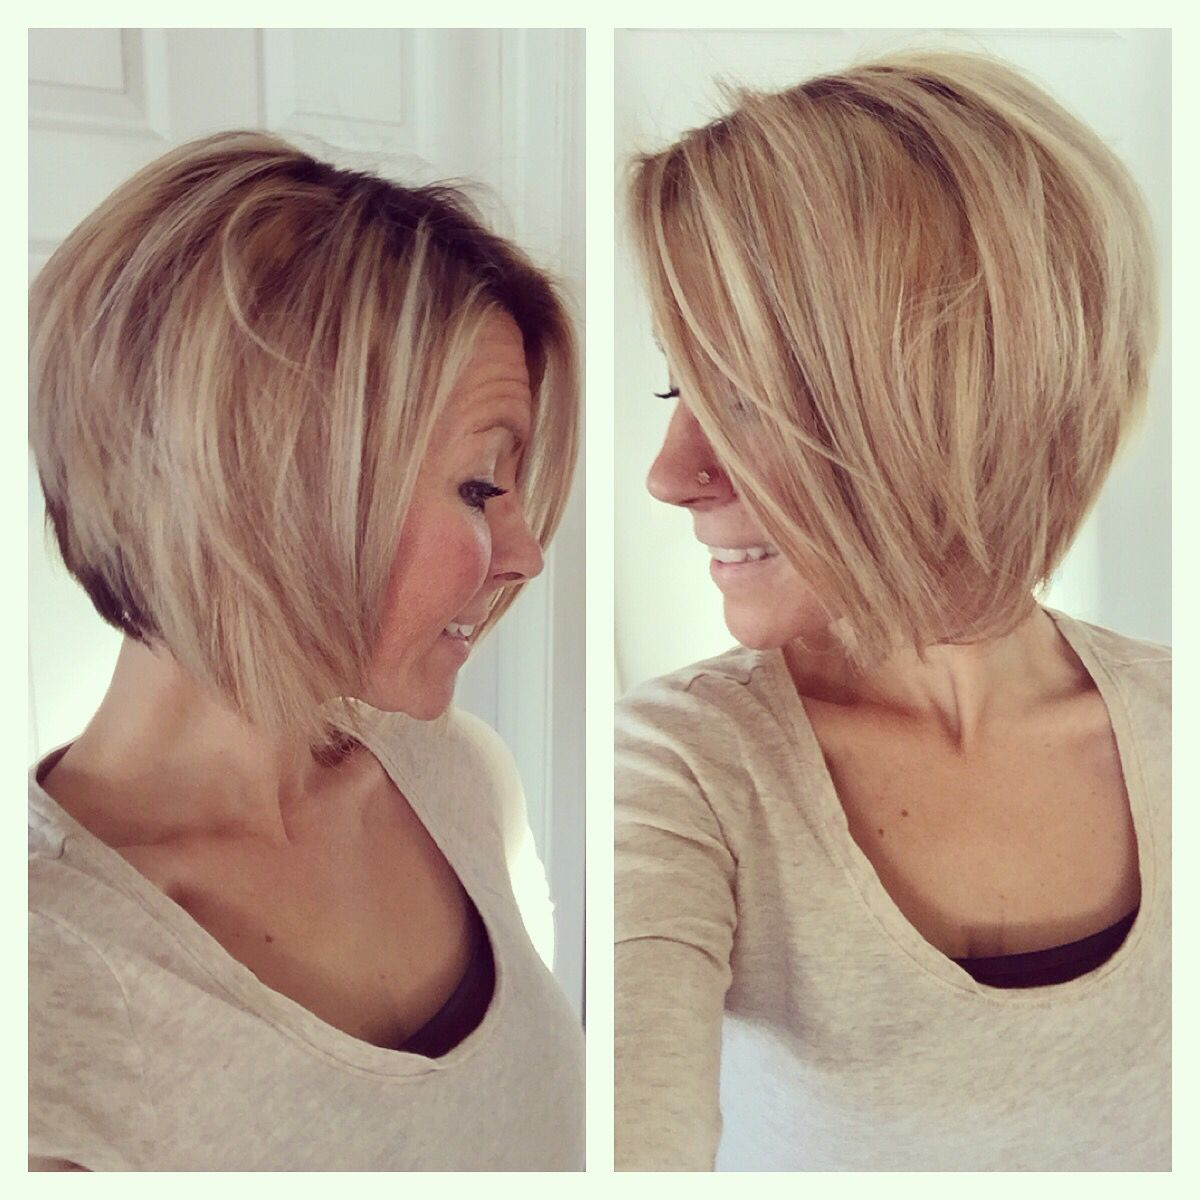 Short medium angled bob haircut. Reverse Bob. Blonde highlight